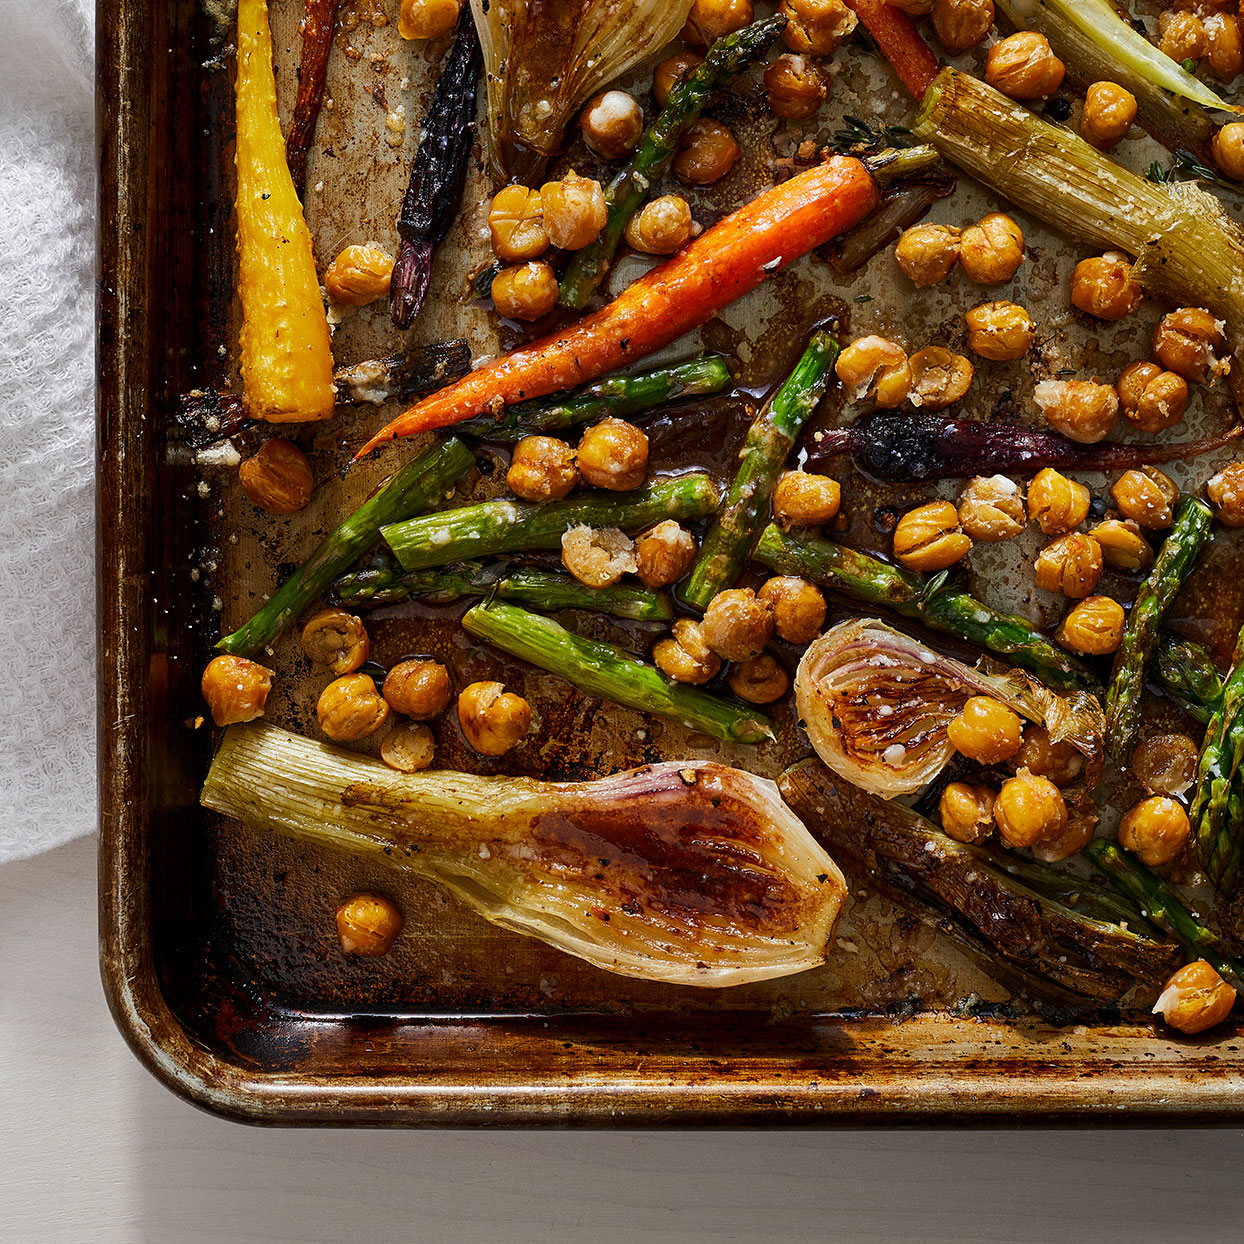 A tangy, balsamic dressing and nutty Parmesan cheese combine to coat tender roasted vegetables and chickpeas in this springy vegetarian dinner. To keep it vegetarian, serve it over quinoa or, for meat-eaters, serve with roasted chicken or pan-seared fish. Source: EatingWell.com, March 2020